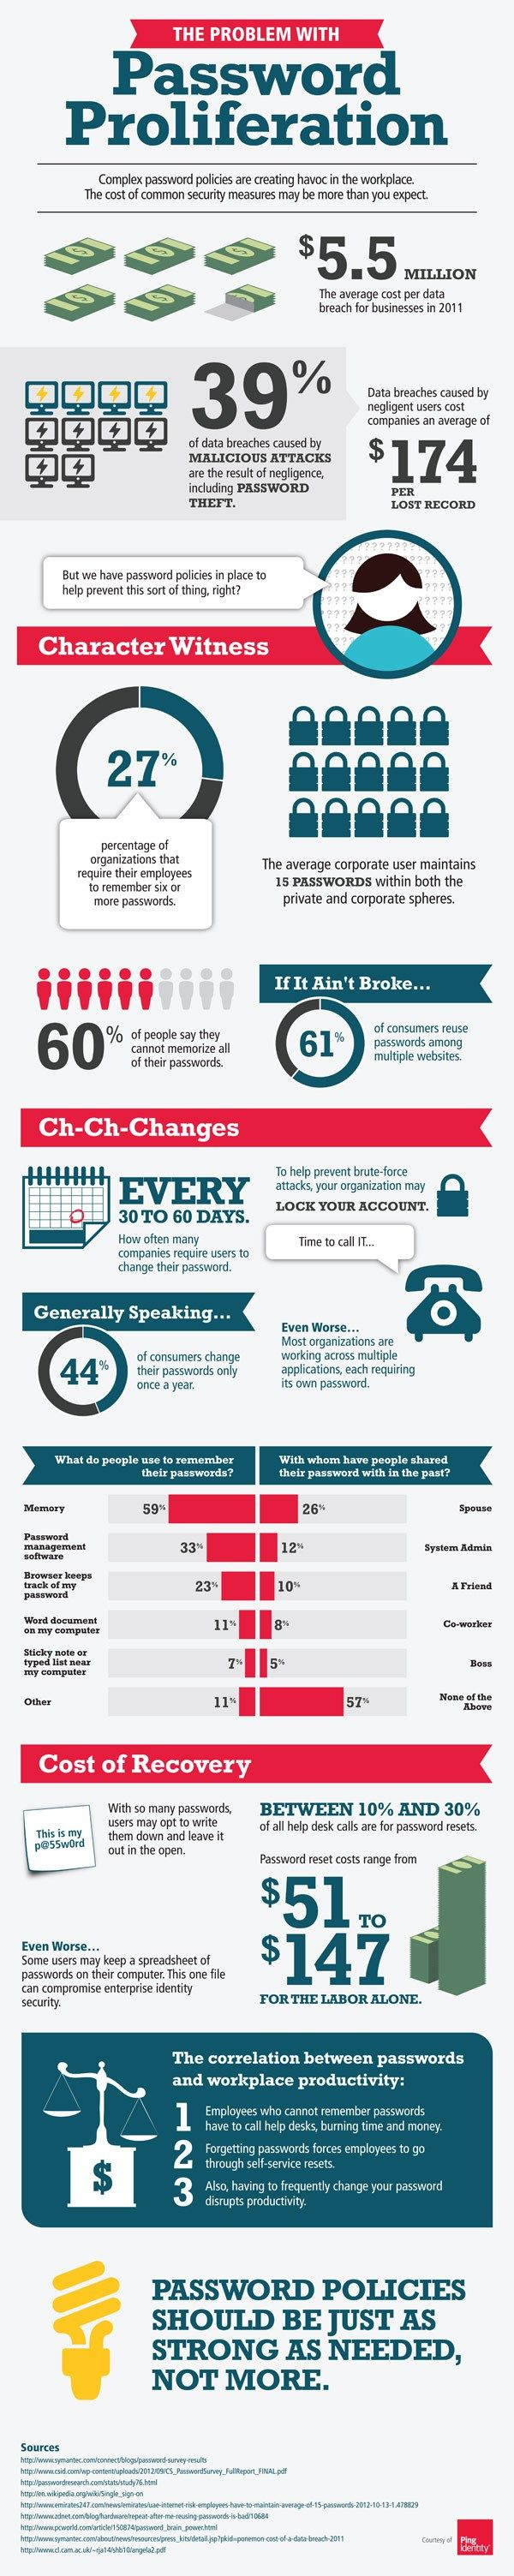 passwod proliferation infographic The Problem With Passwords [Infographic]